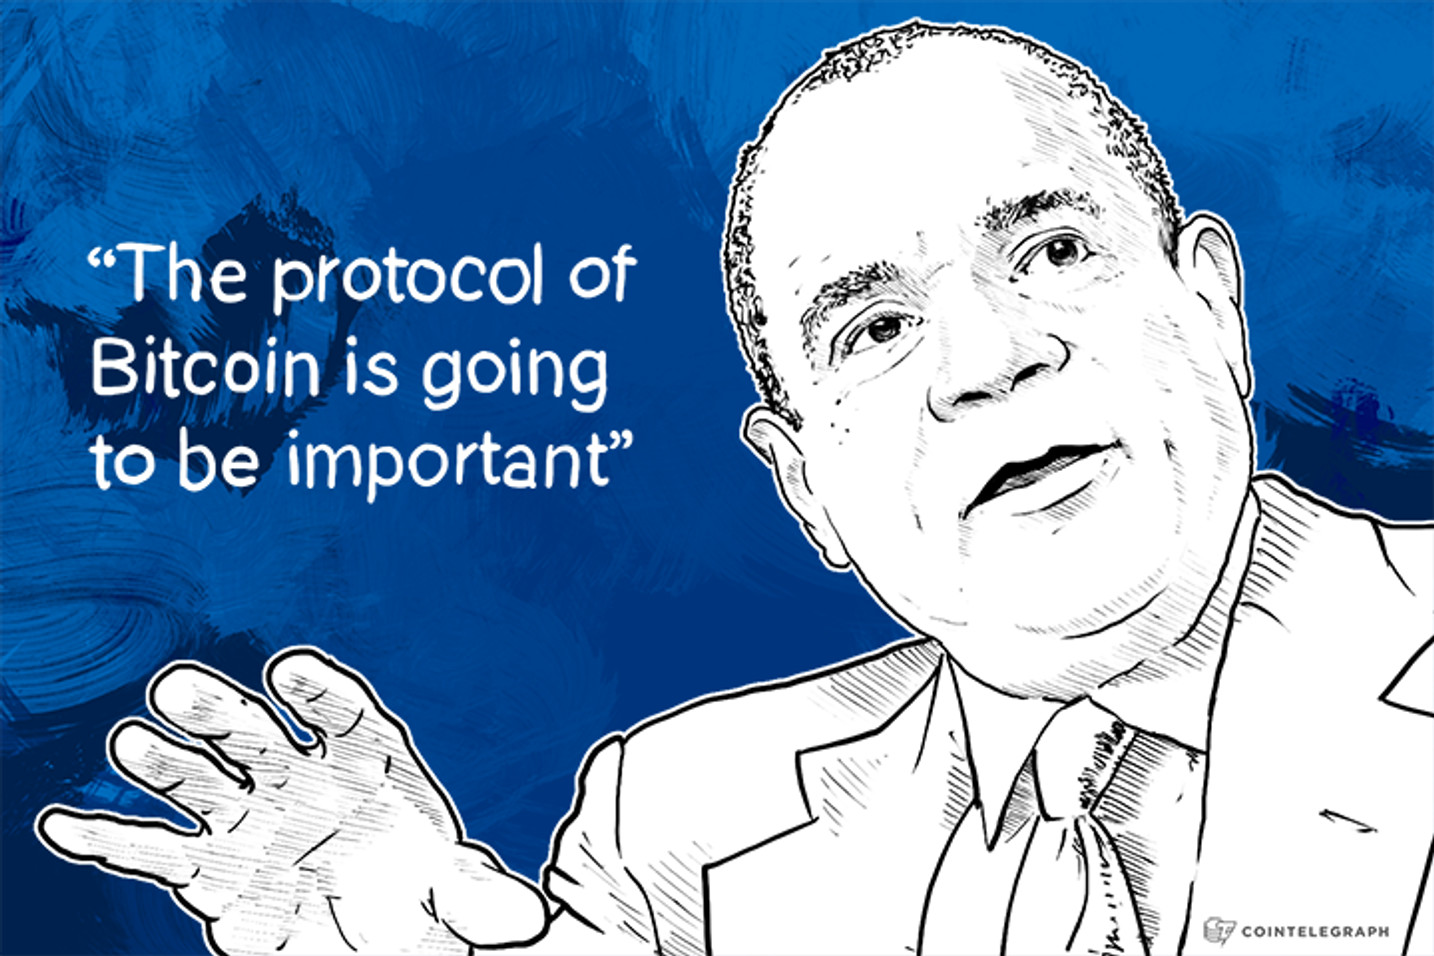 American Express CEO Sees 'Importance' of Bitcoin